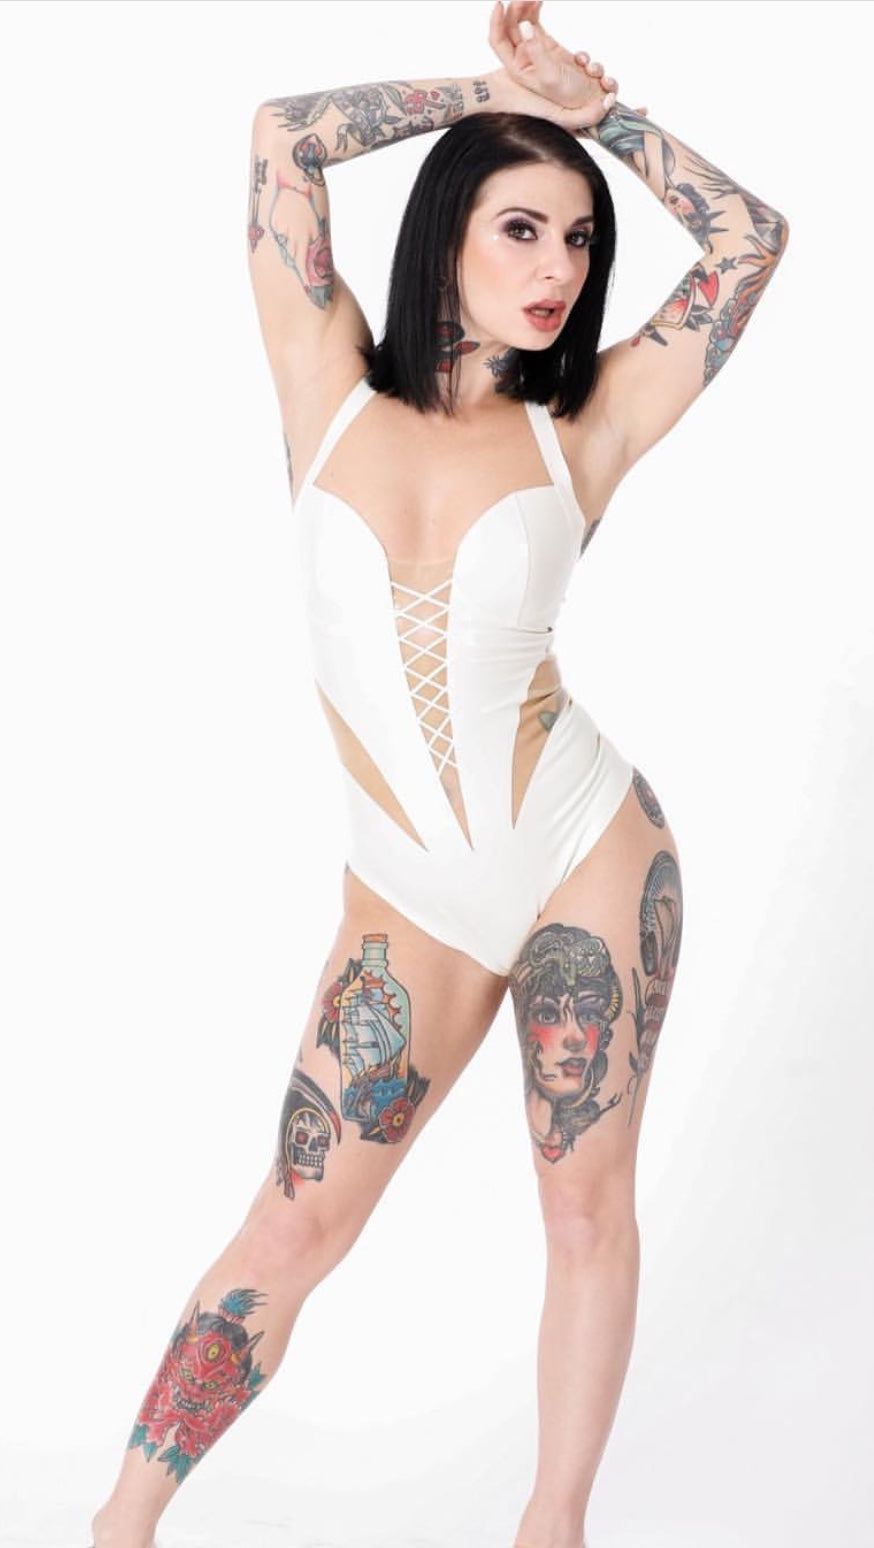 The Latex Angel Bodysuit